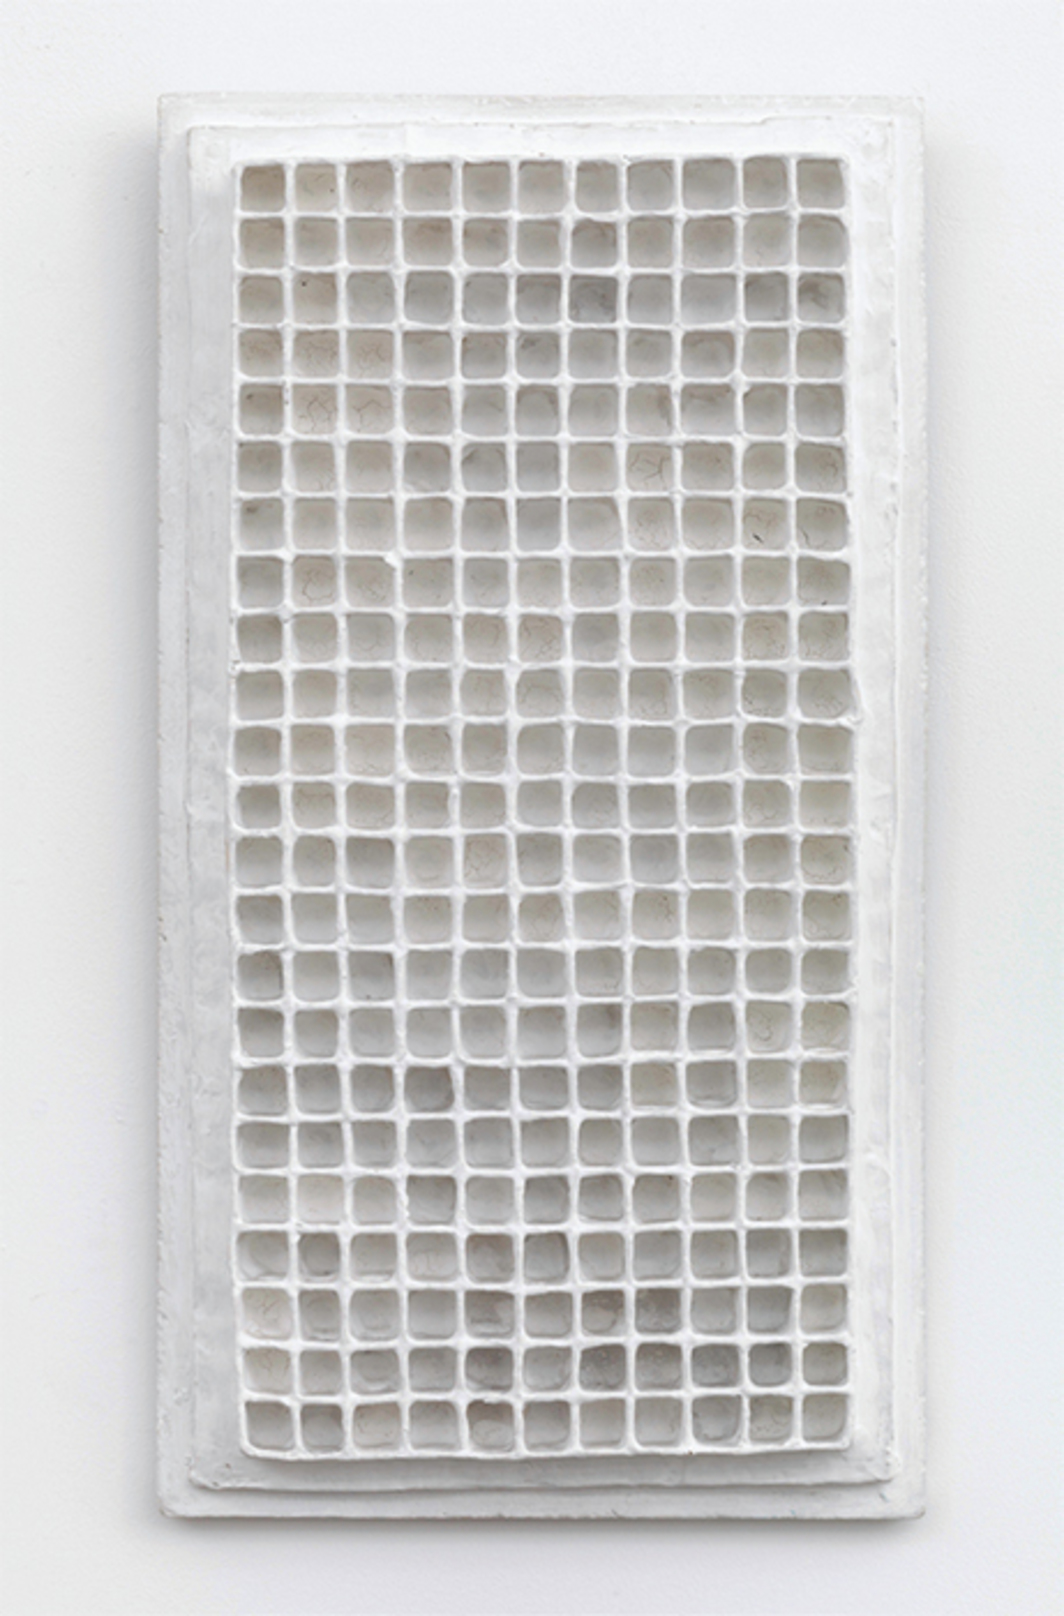 "Jan Schoonhoven, Relief, 1964, wood, cardboard, paper, emulsion paint, 20 1/4 × 10 7/8 × 1 3/4""."